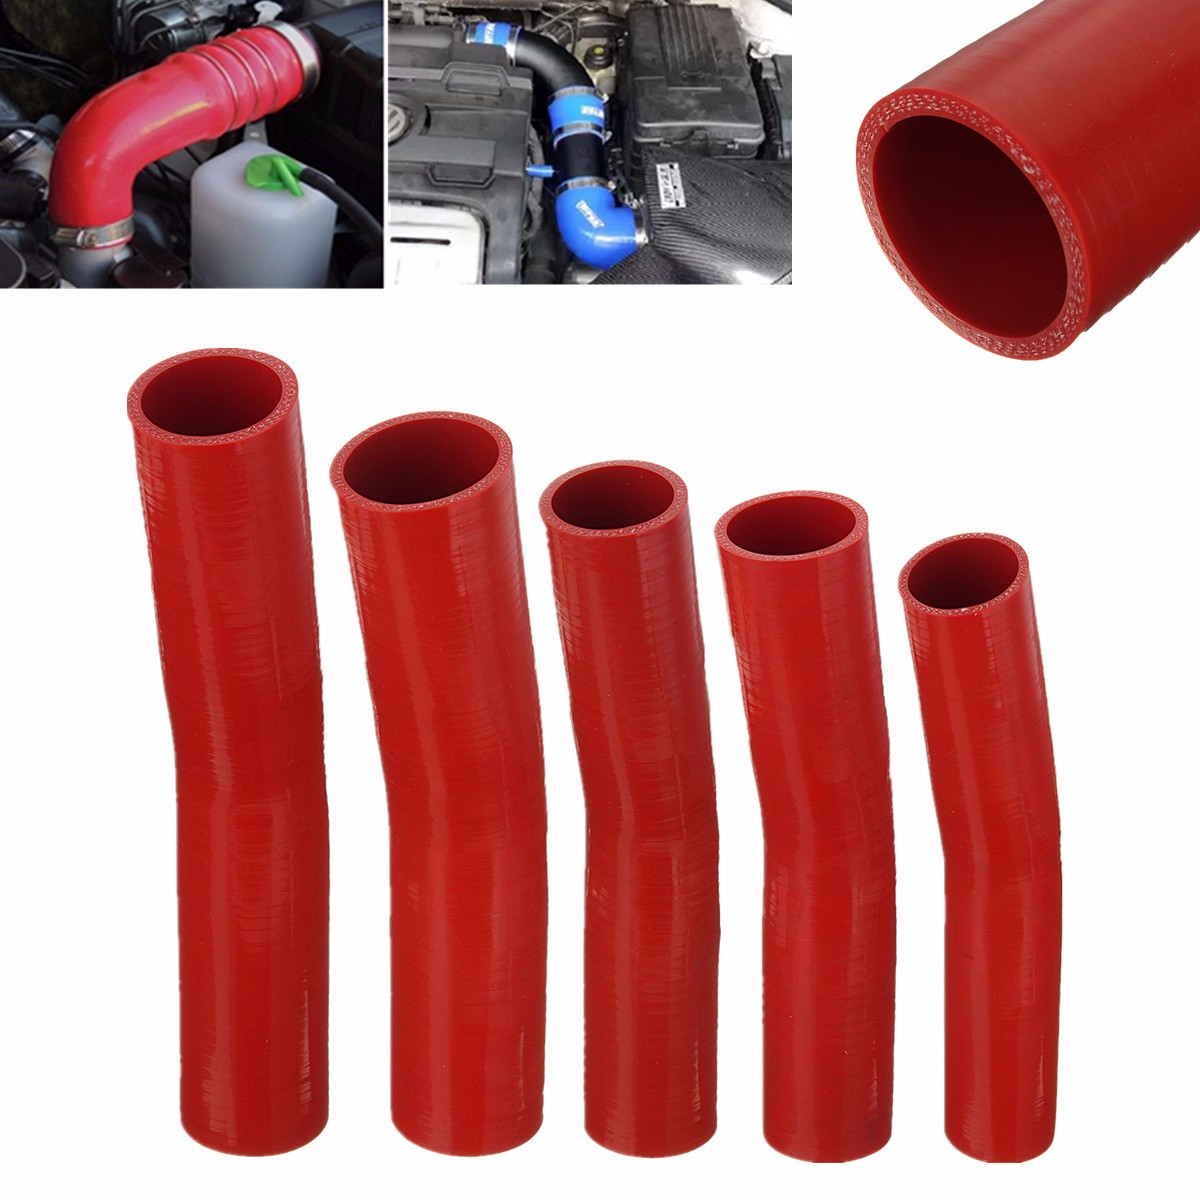 Auto Silicone Hoses Rubber 15 Degree Elbow Bend Hose Air Water Coolant Joiner Pipe Tube